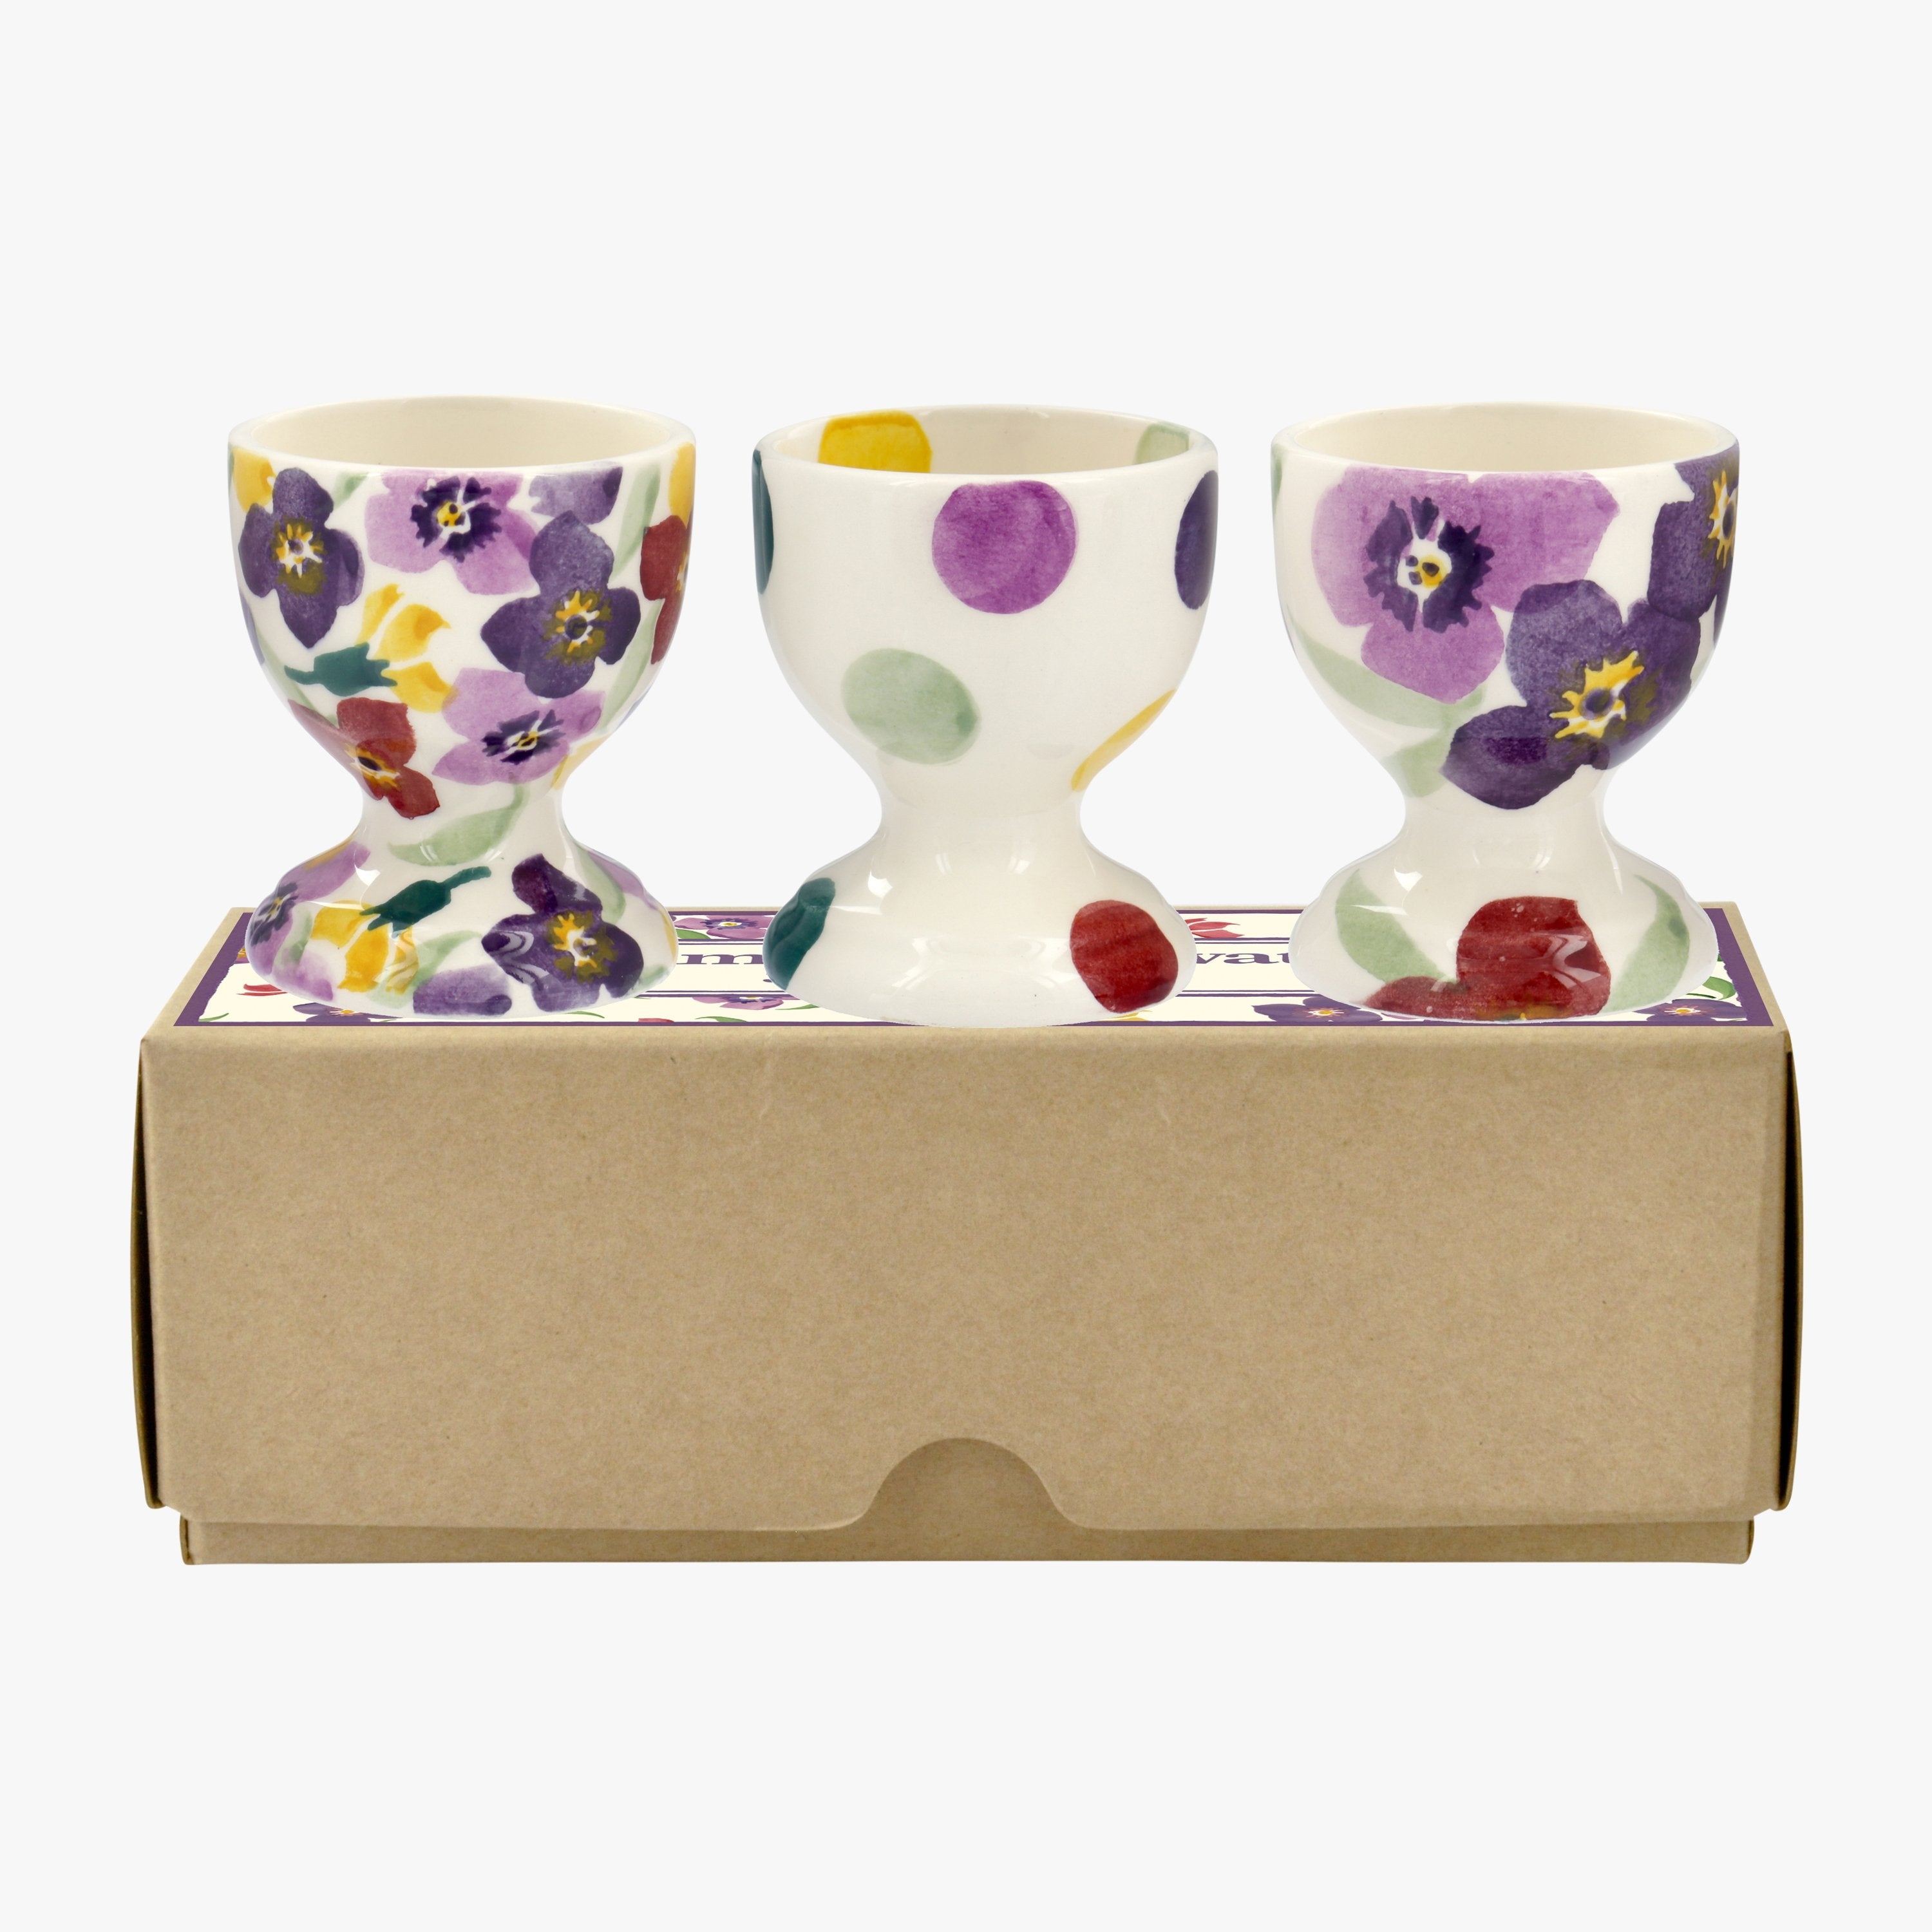 Photo of Wallflower mix set of 3 egg cups